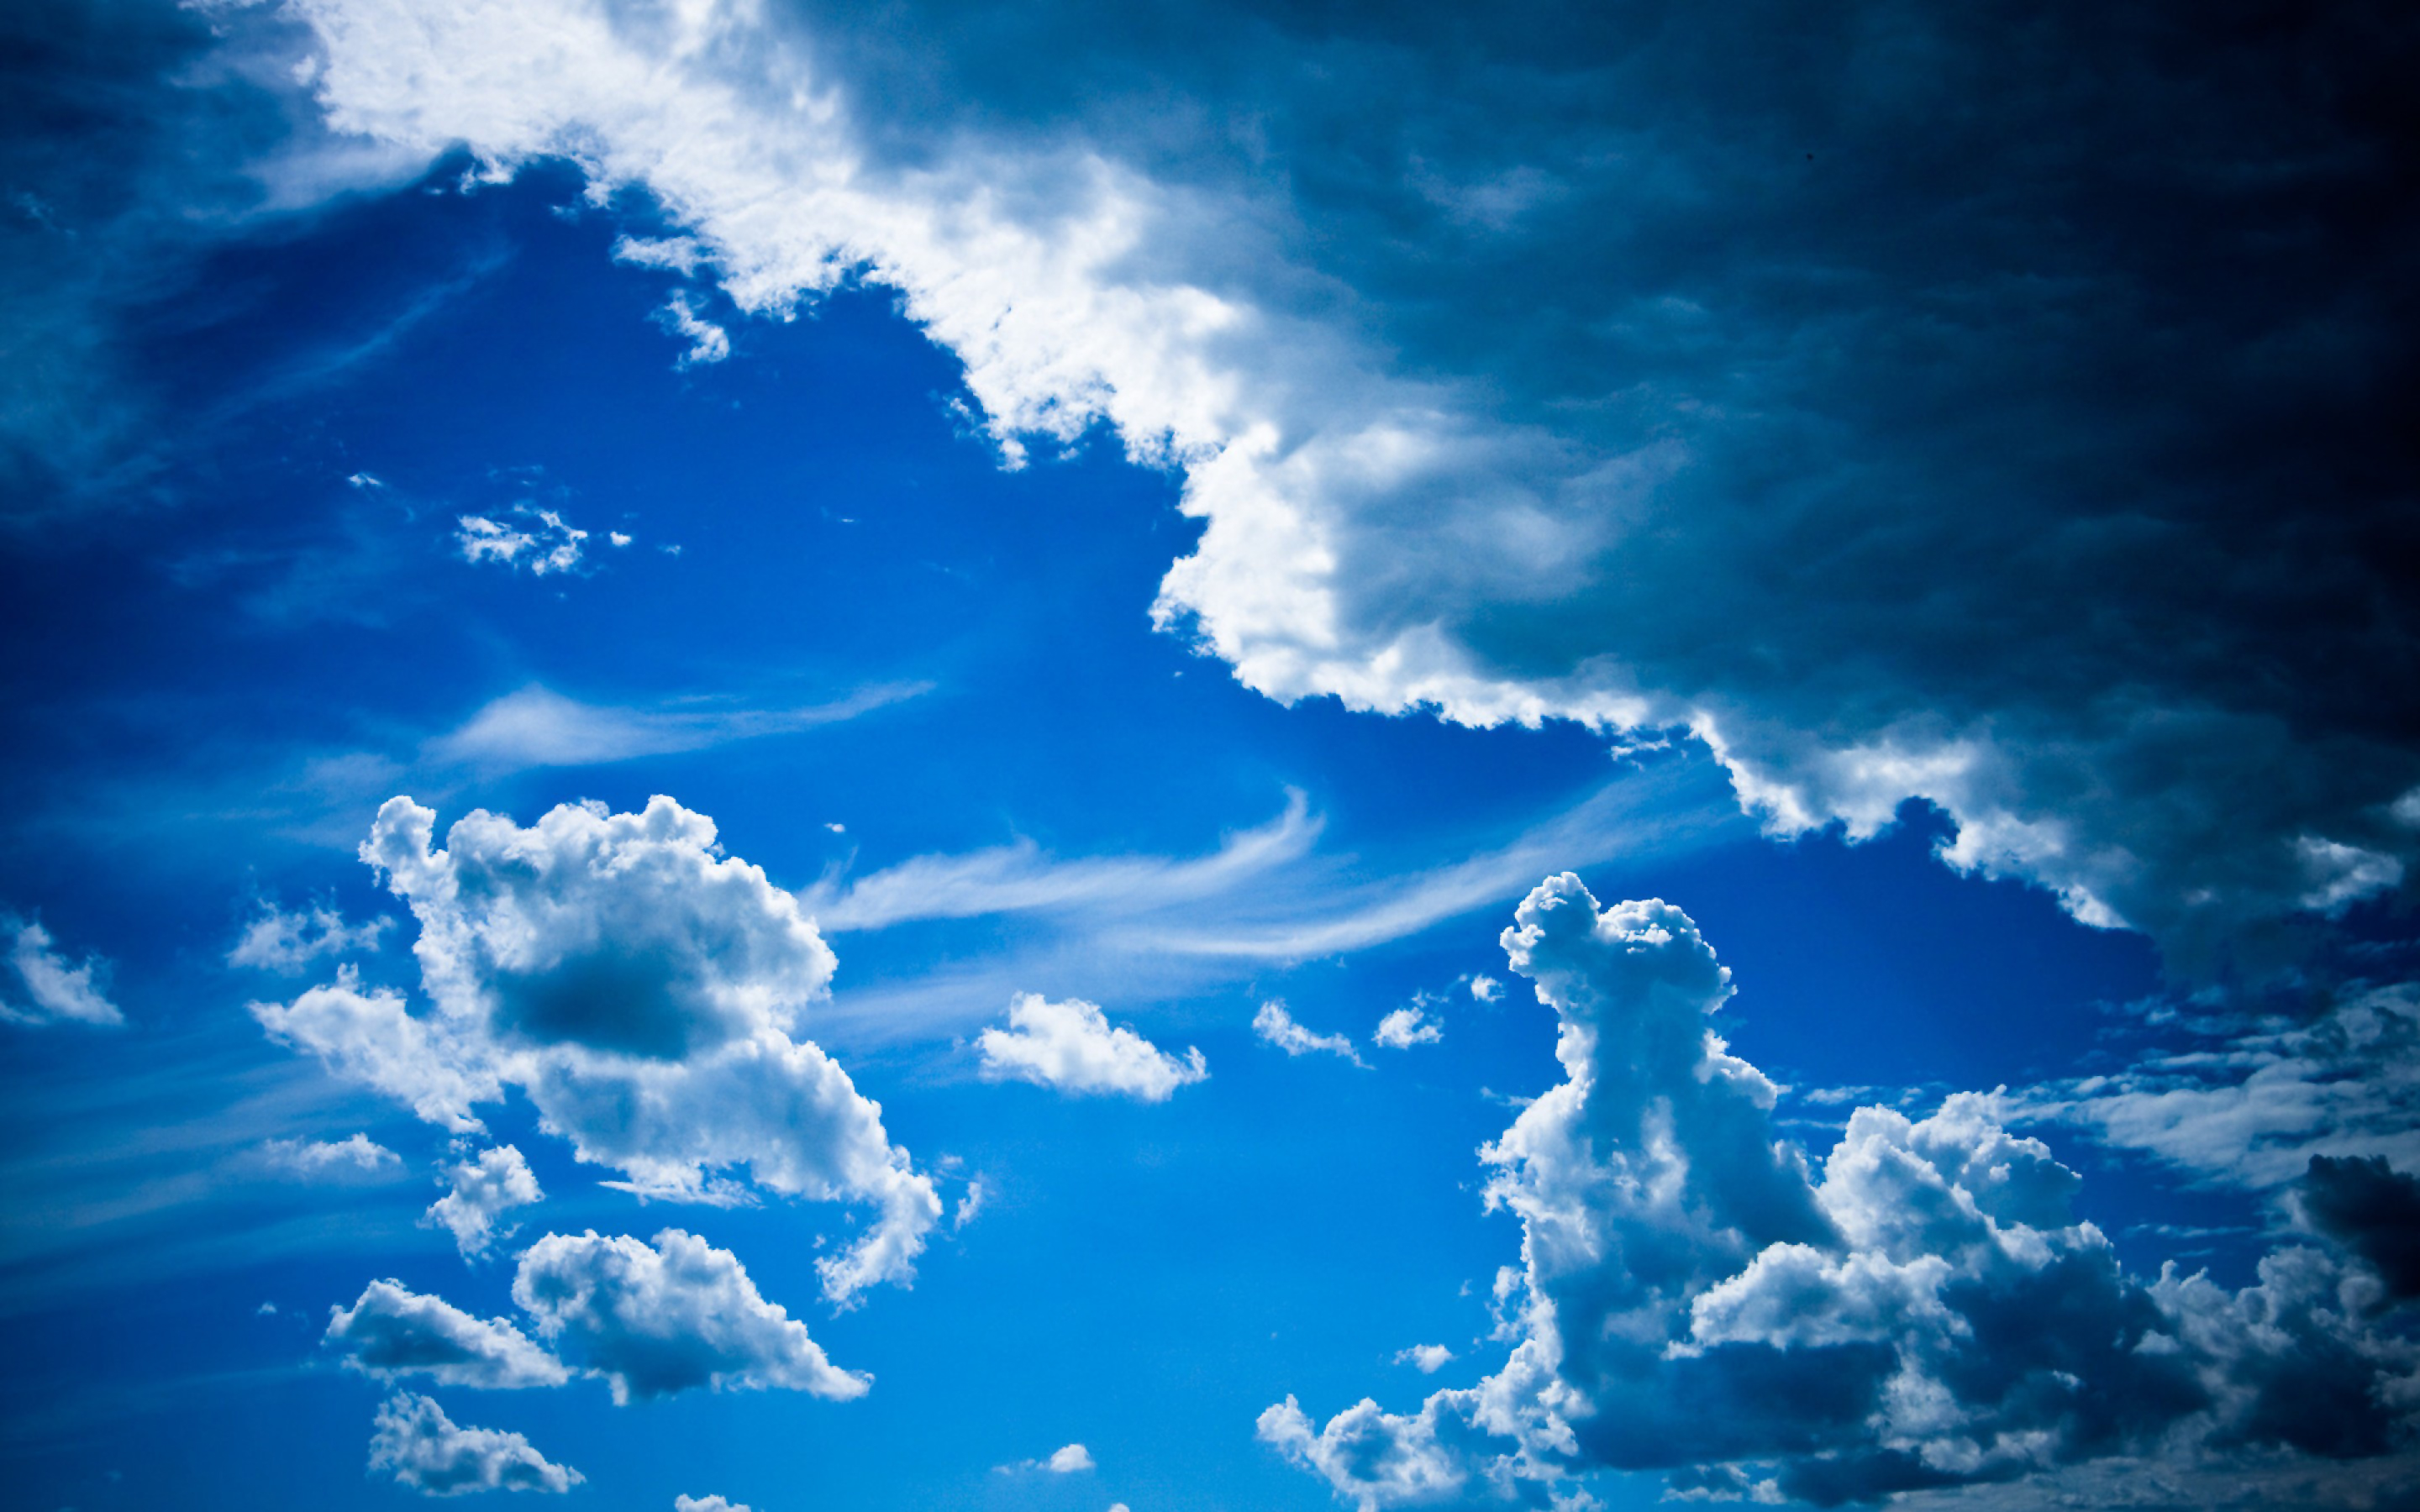 File Name 746455 Beautiful Blue Sky High Quality Wallpaper 746455 2880x1800